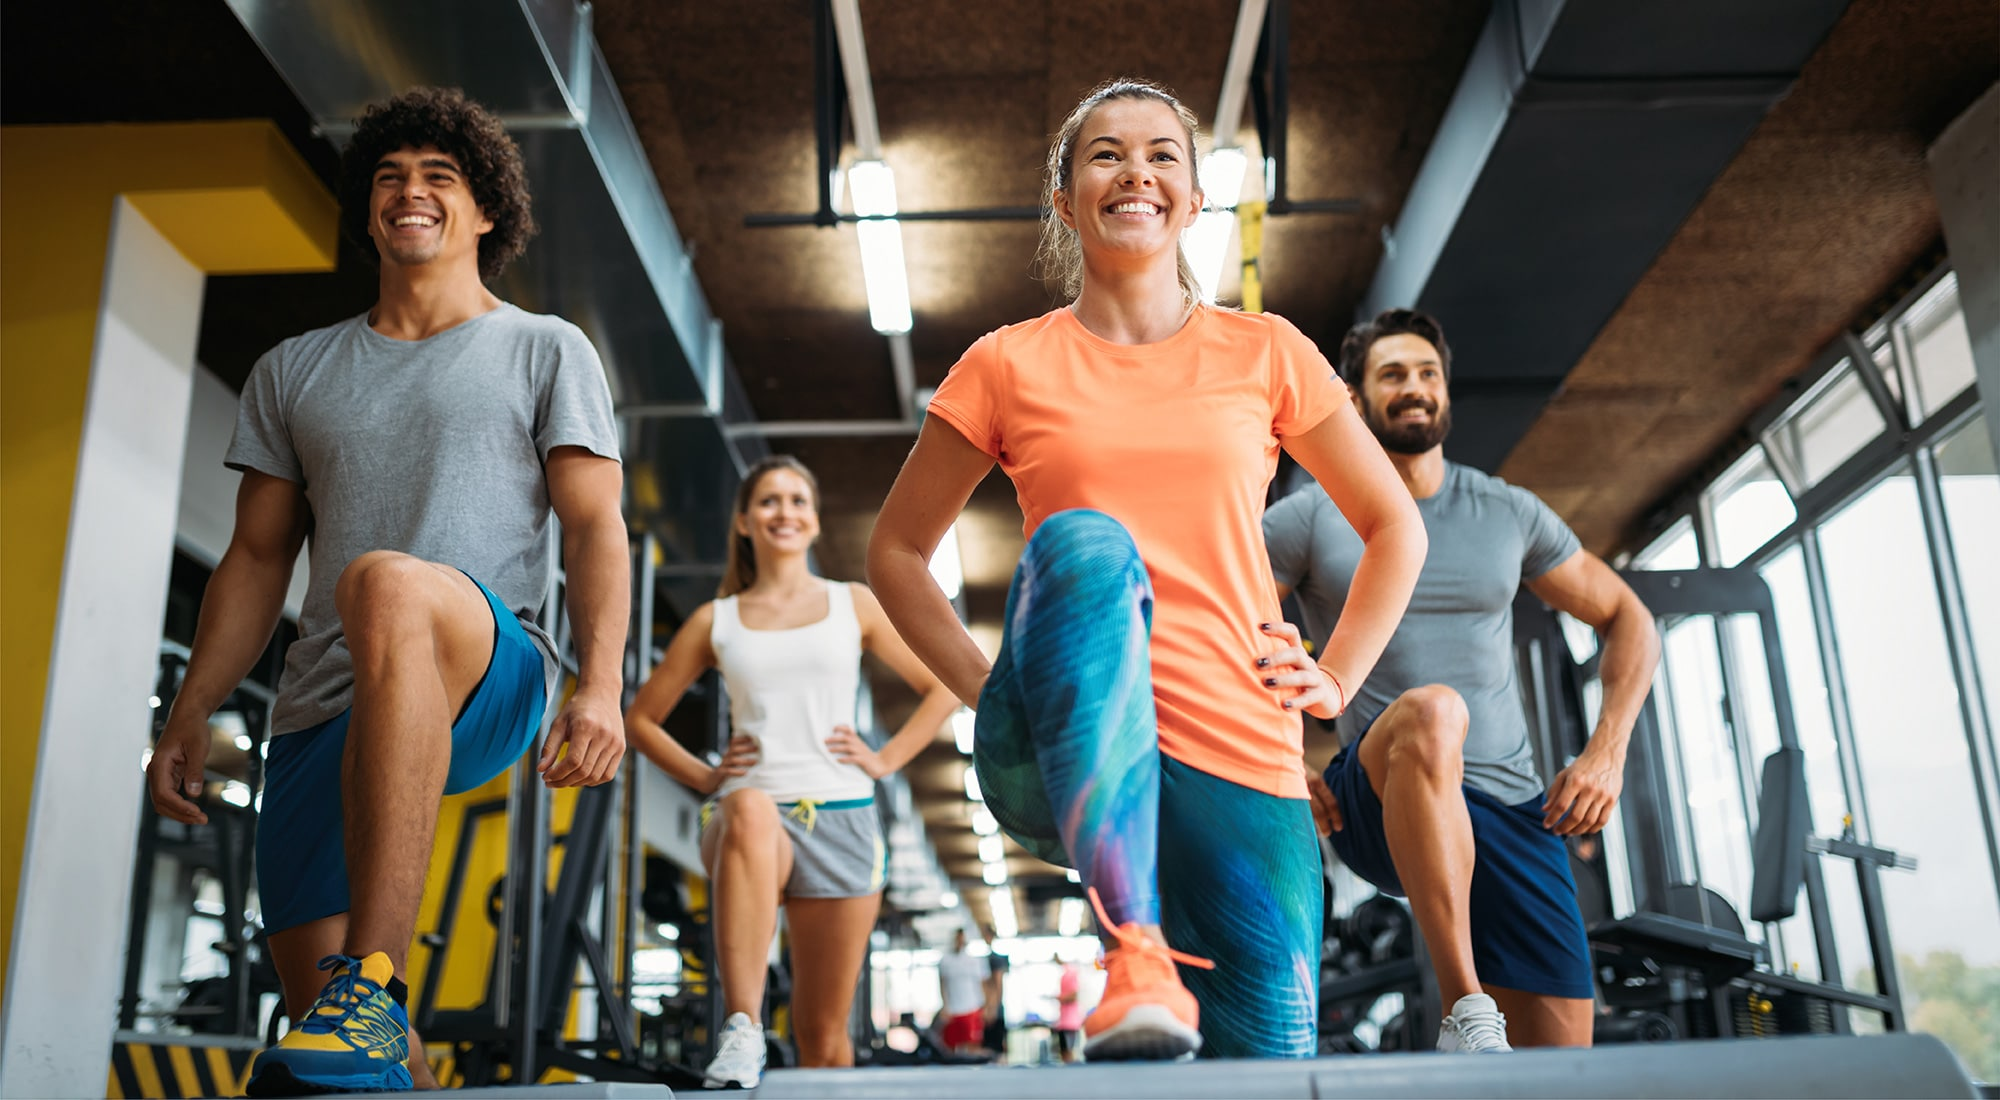 ukactive launches Independent Operators Steering Group